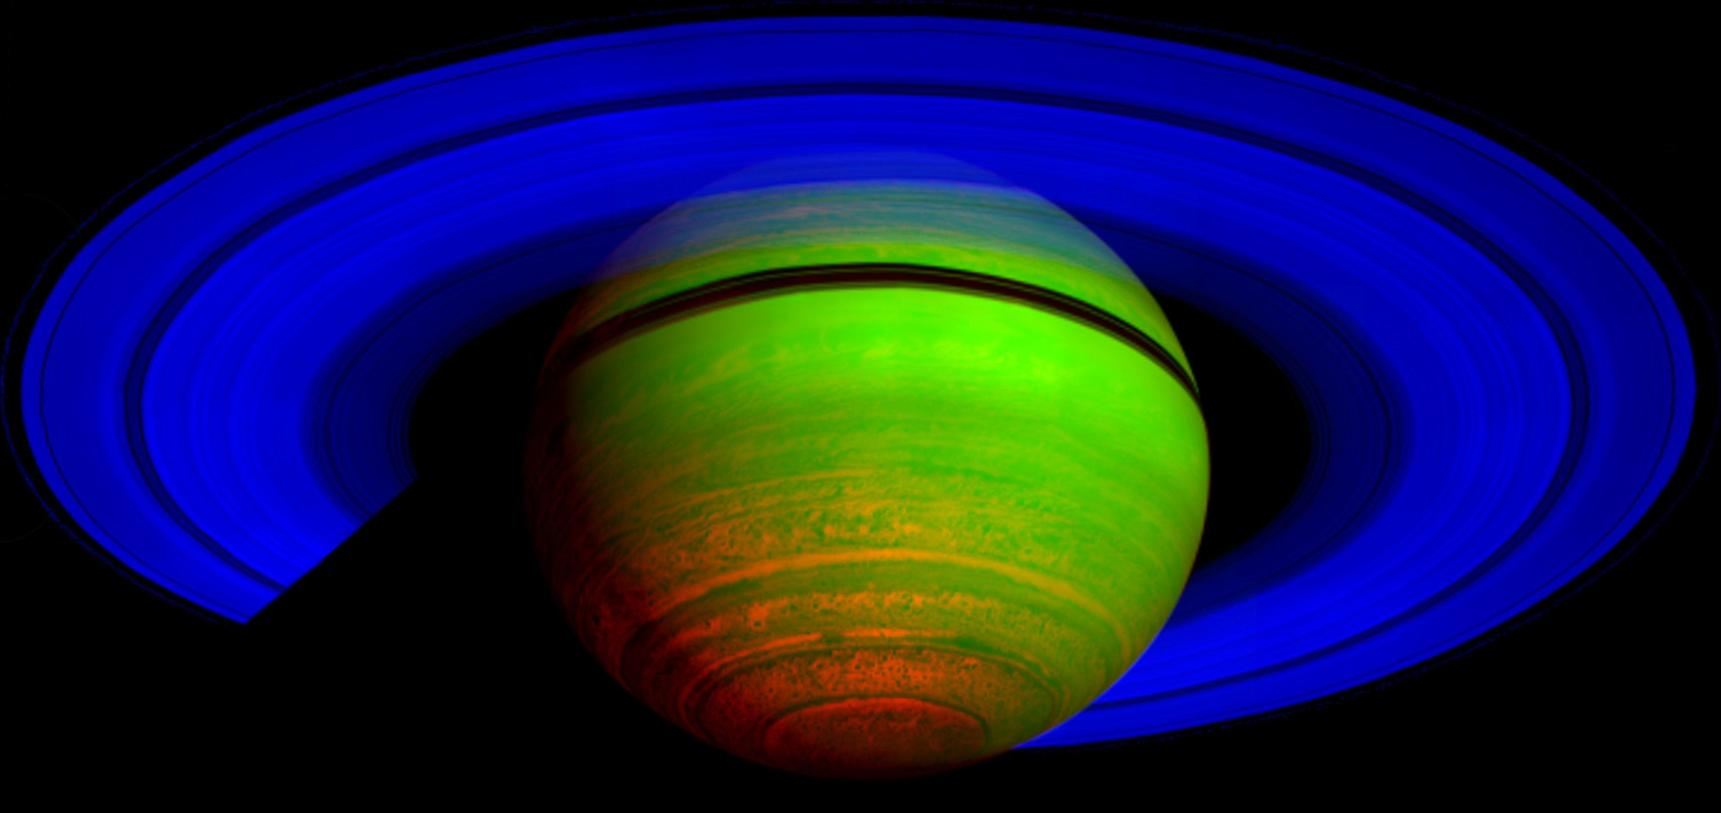 Saturn by NASA's Cassini orbiter. This is a false colour image recorded using three infrared wavelengths, and shows patterns of thermal emission rather than reflected sunlight. – Image Credit:  NASA/JPL/ASI/University of Arizona